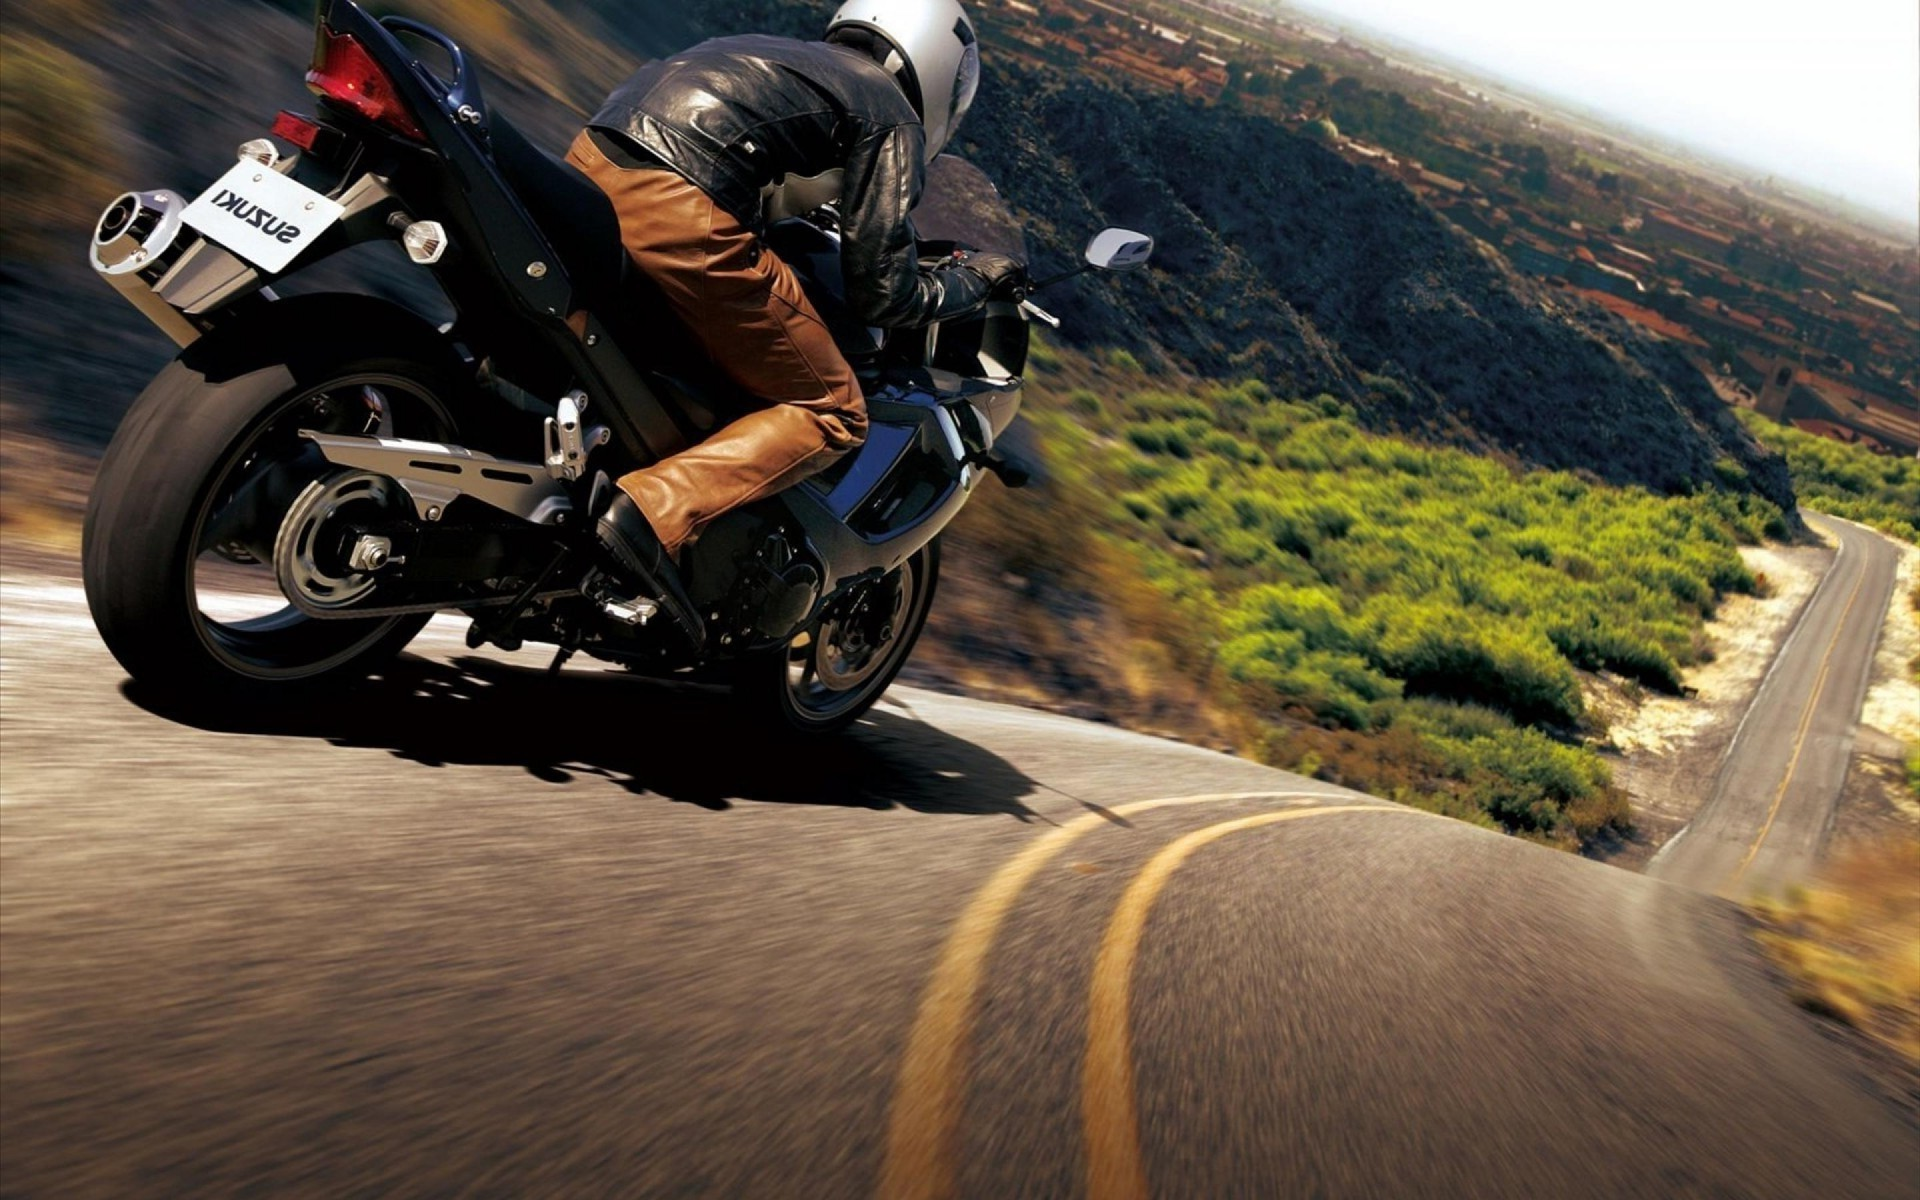 Biker rushes on a motorcycle down the steep slope of the mountain